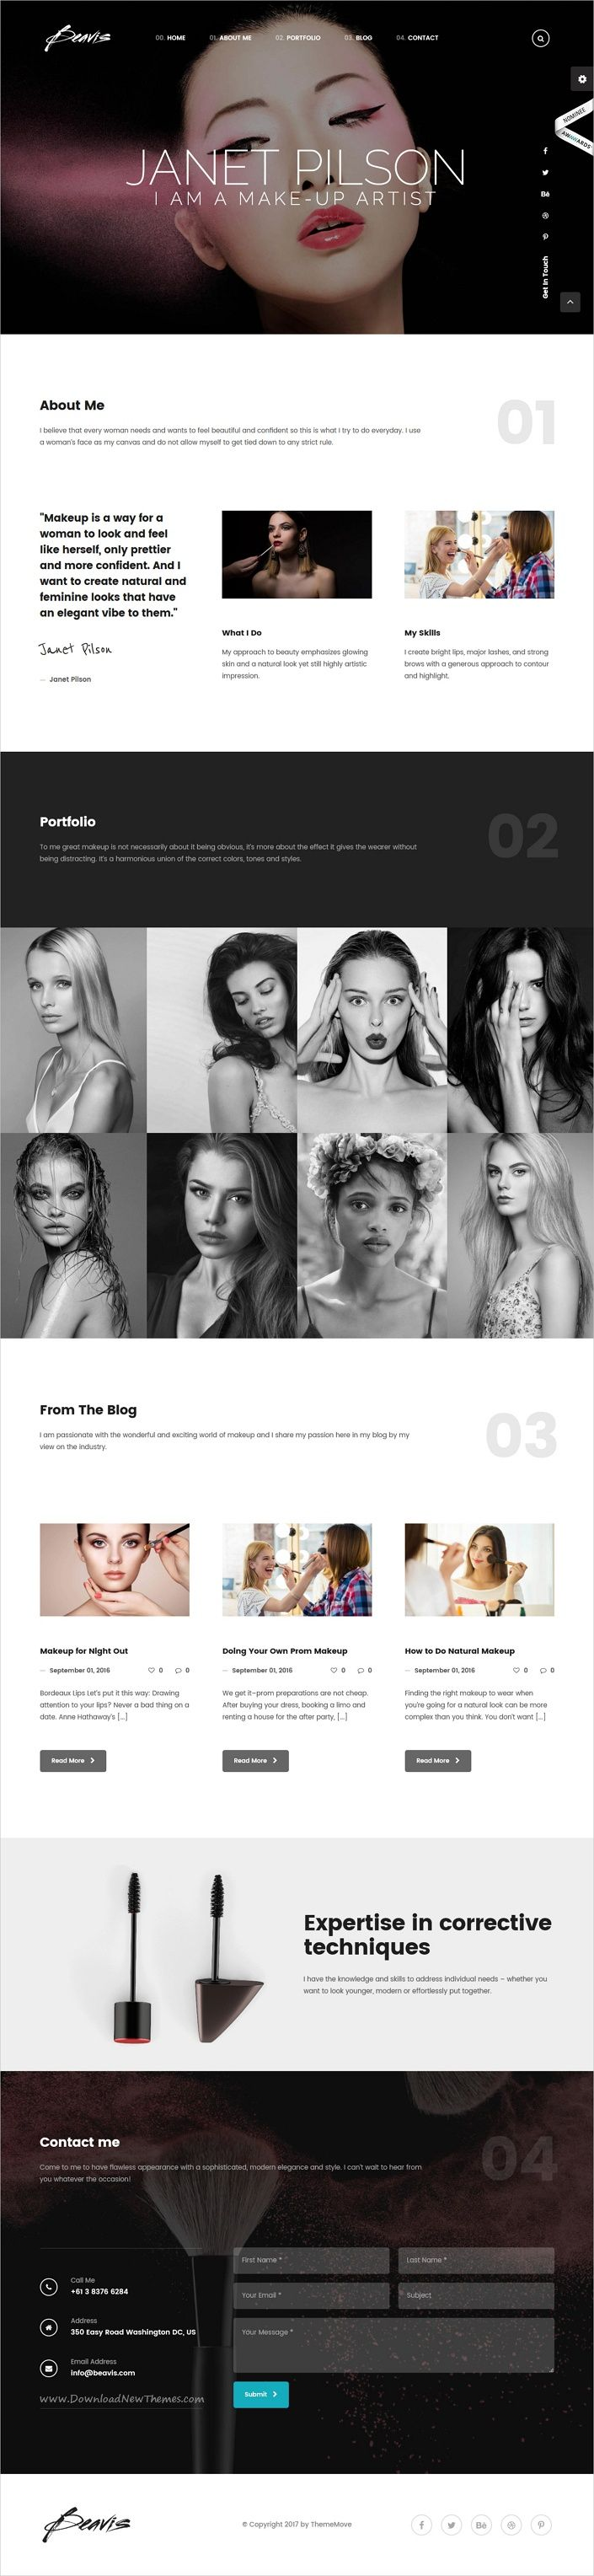 Beavis is an awesome responsive #WordPress theme for creative #makeup #artists #portfolio showcase website with 30+ multipurpose homepage layouts download now➩ https://themeforest.net/item/beavis-enterprise-multipurpose-wordpress-theme/18122295?ref=Datasata